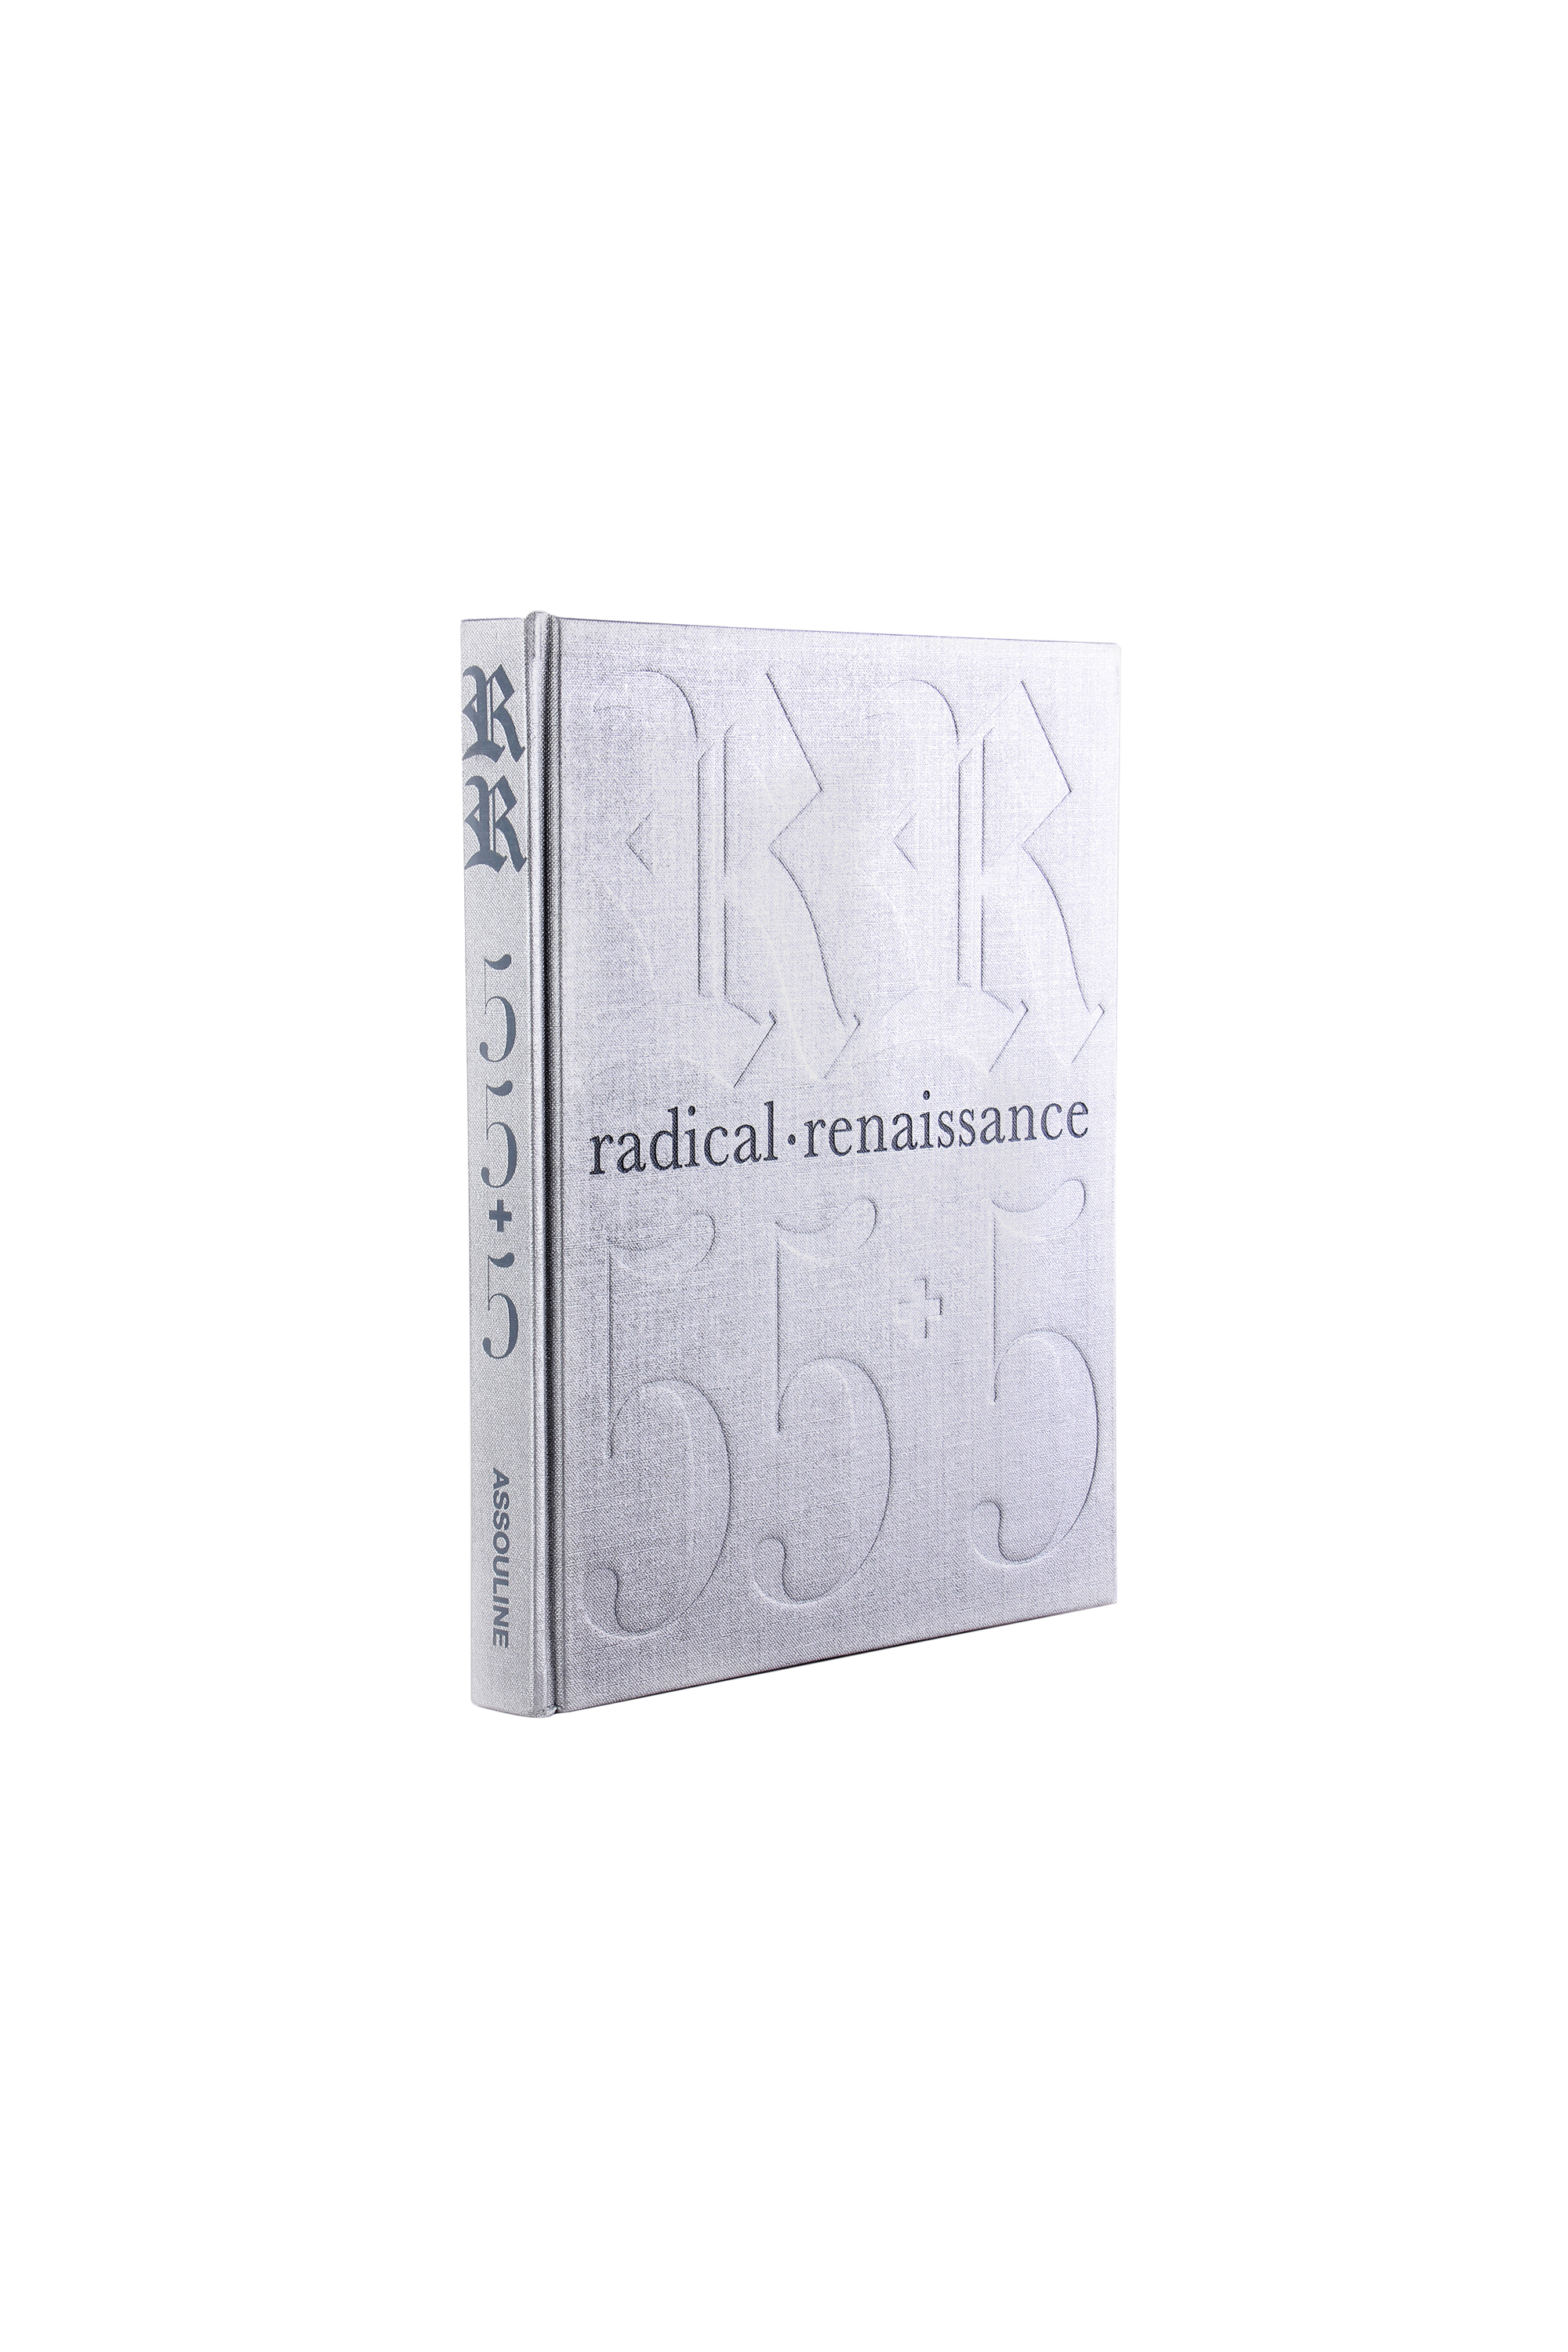 Diesel - Radical Renaissance 55+5 (signed by RR),  - Books - Image 2